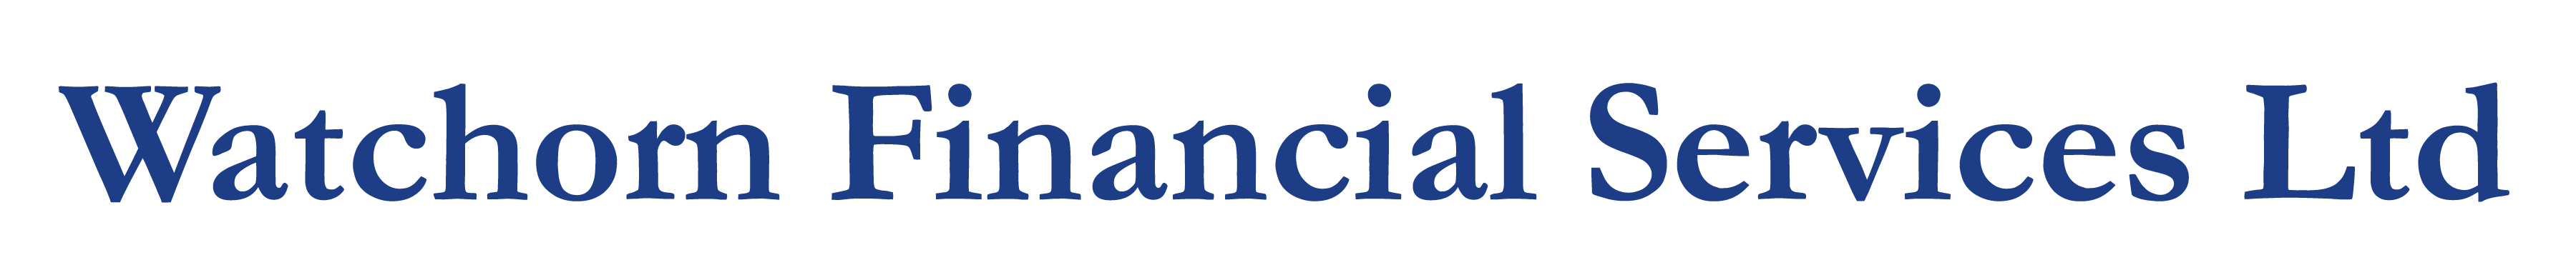 Watchorn Financial Services